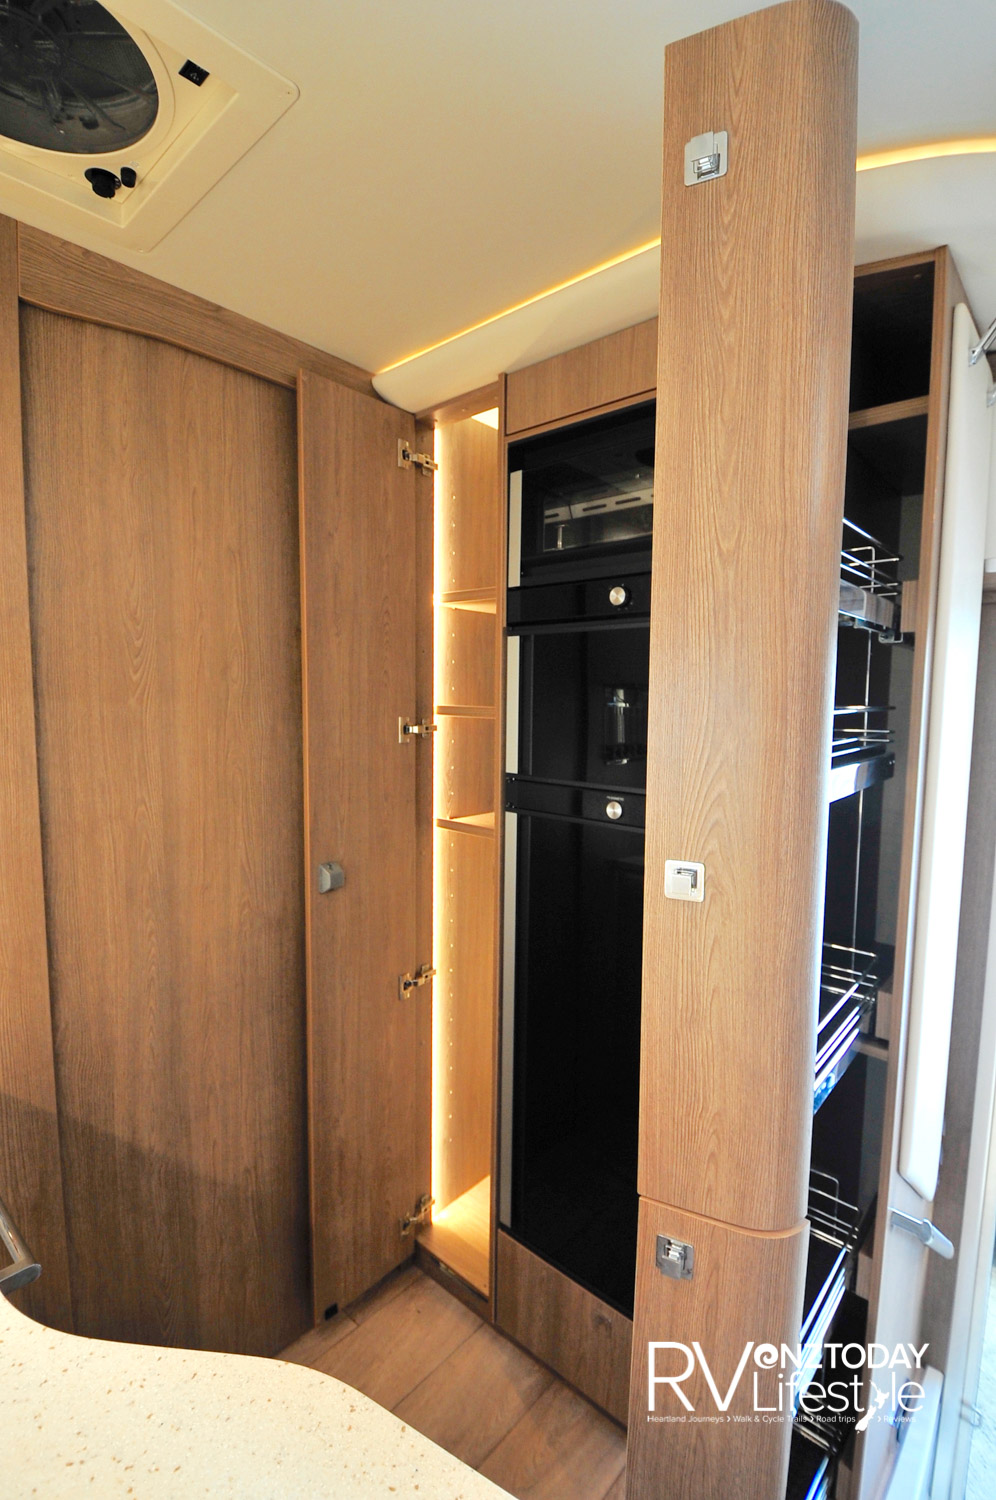 Full-height pantry split into two, double lock on the top one. Fridge with overhead grill unit and another storage or wardrobe unit to the left